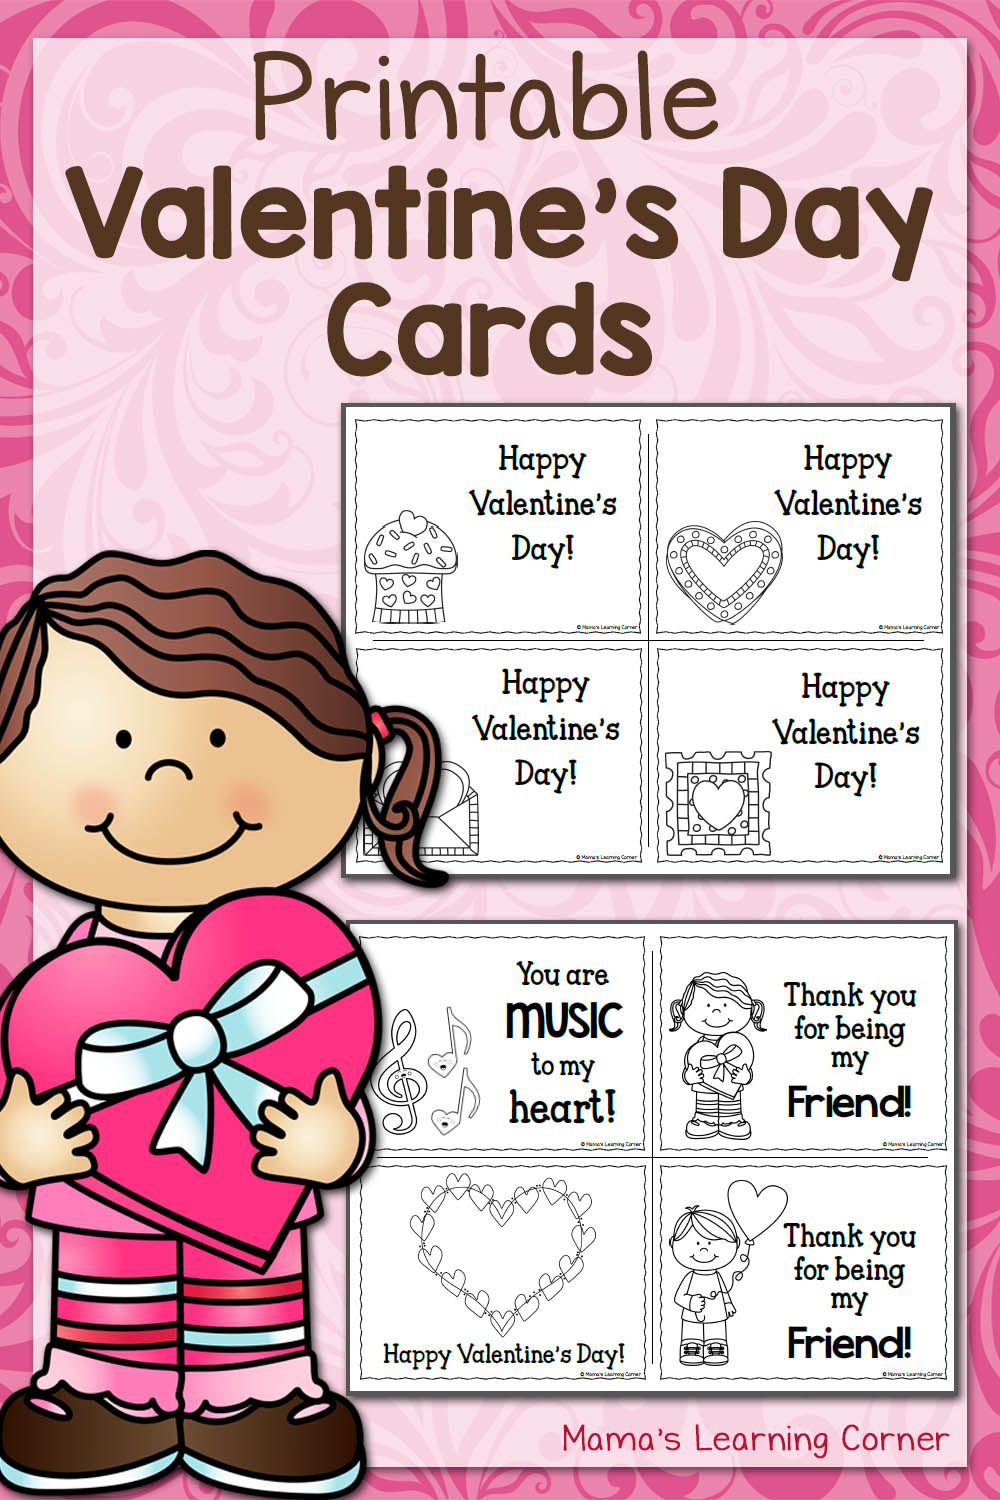 Printable Valentine's Day Cards - Mamas Learning Corner - Free Printable Valentines For Kids